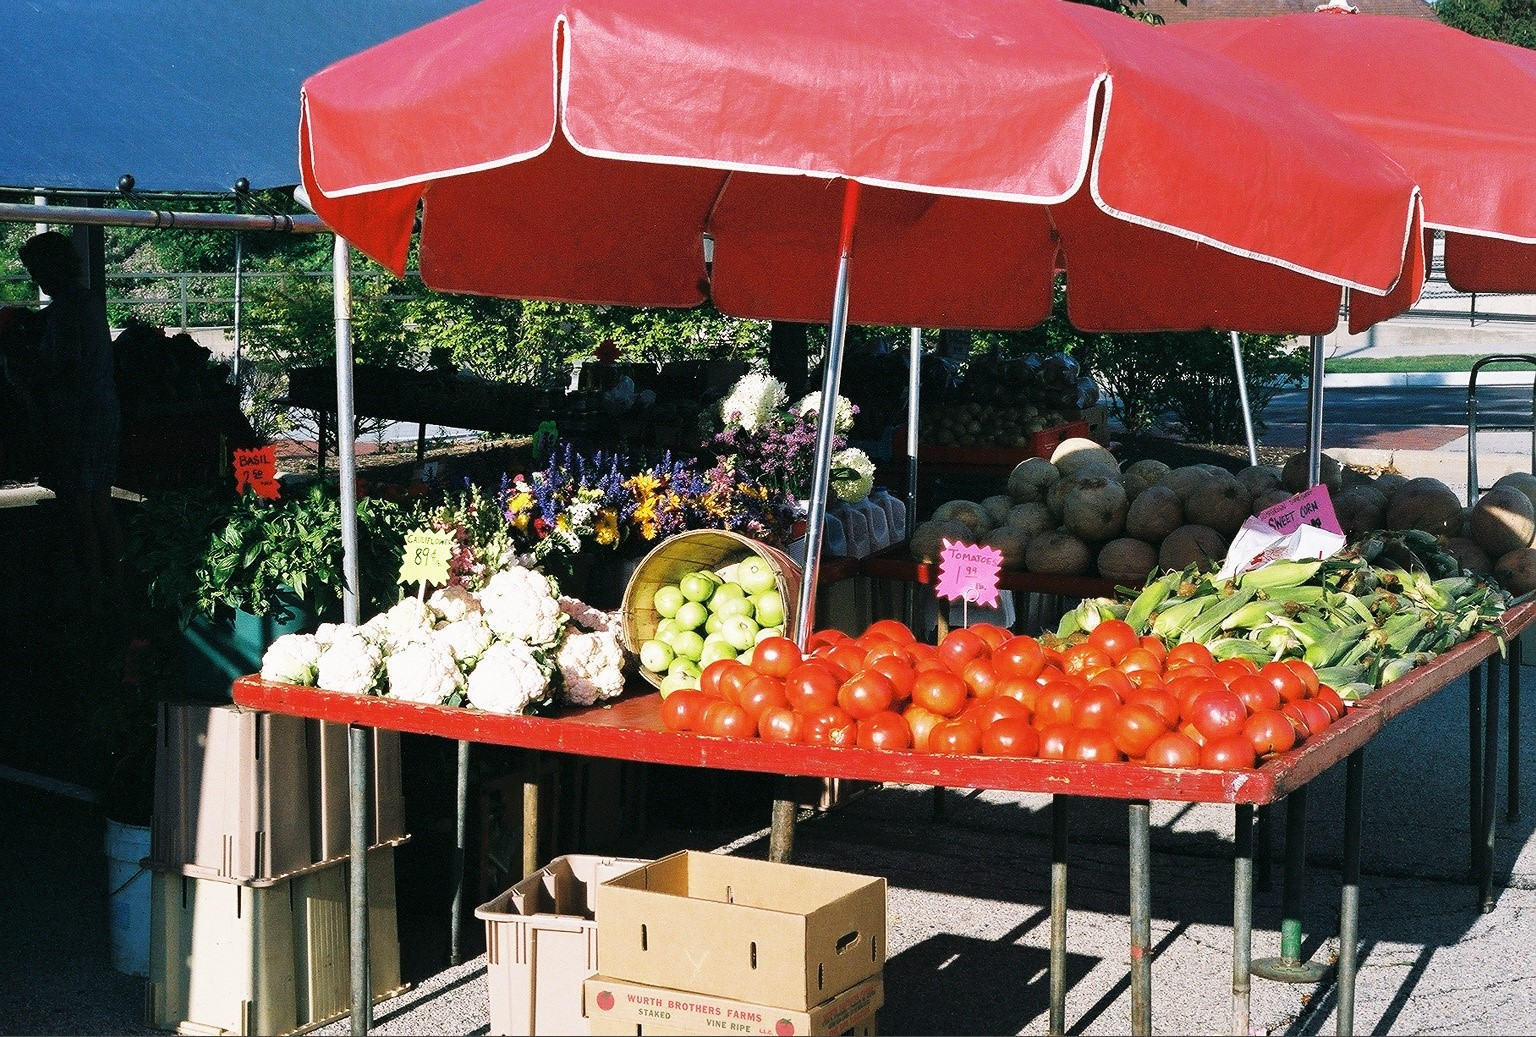 Red and white produce under red awning